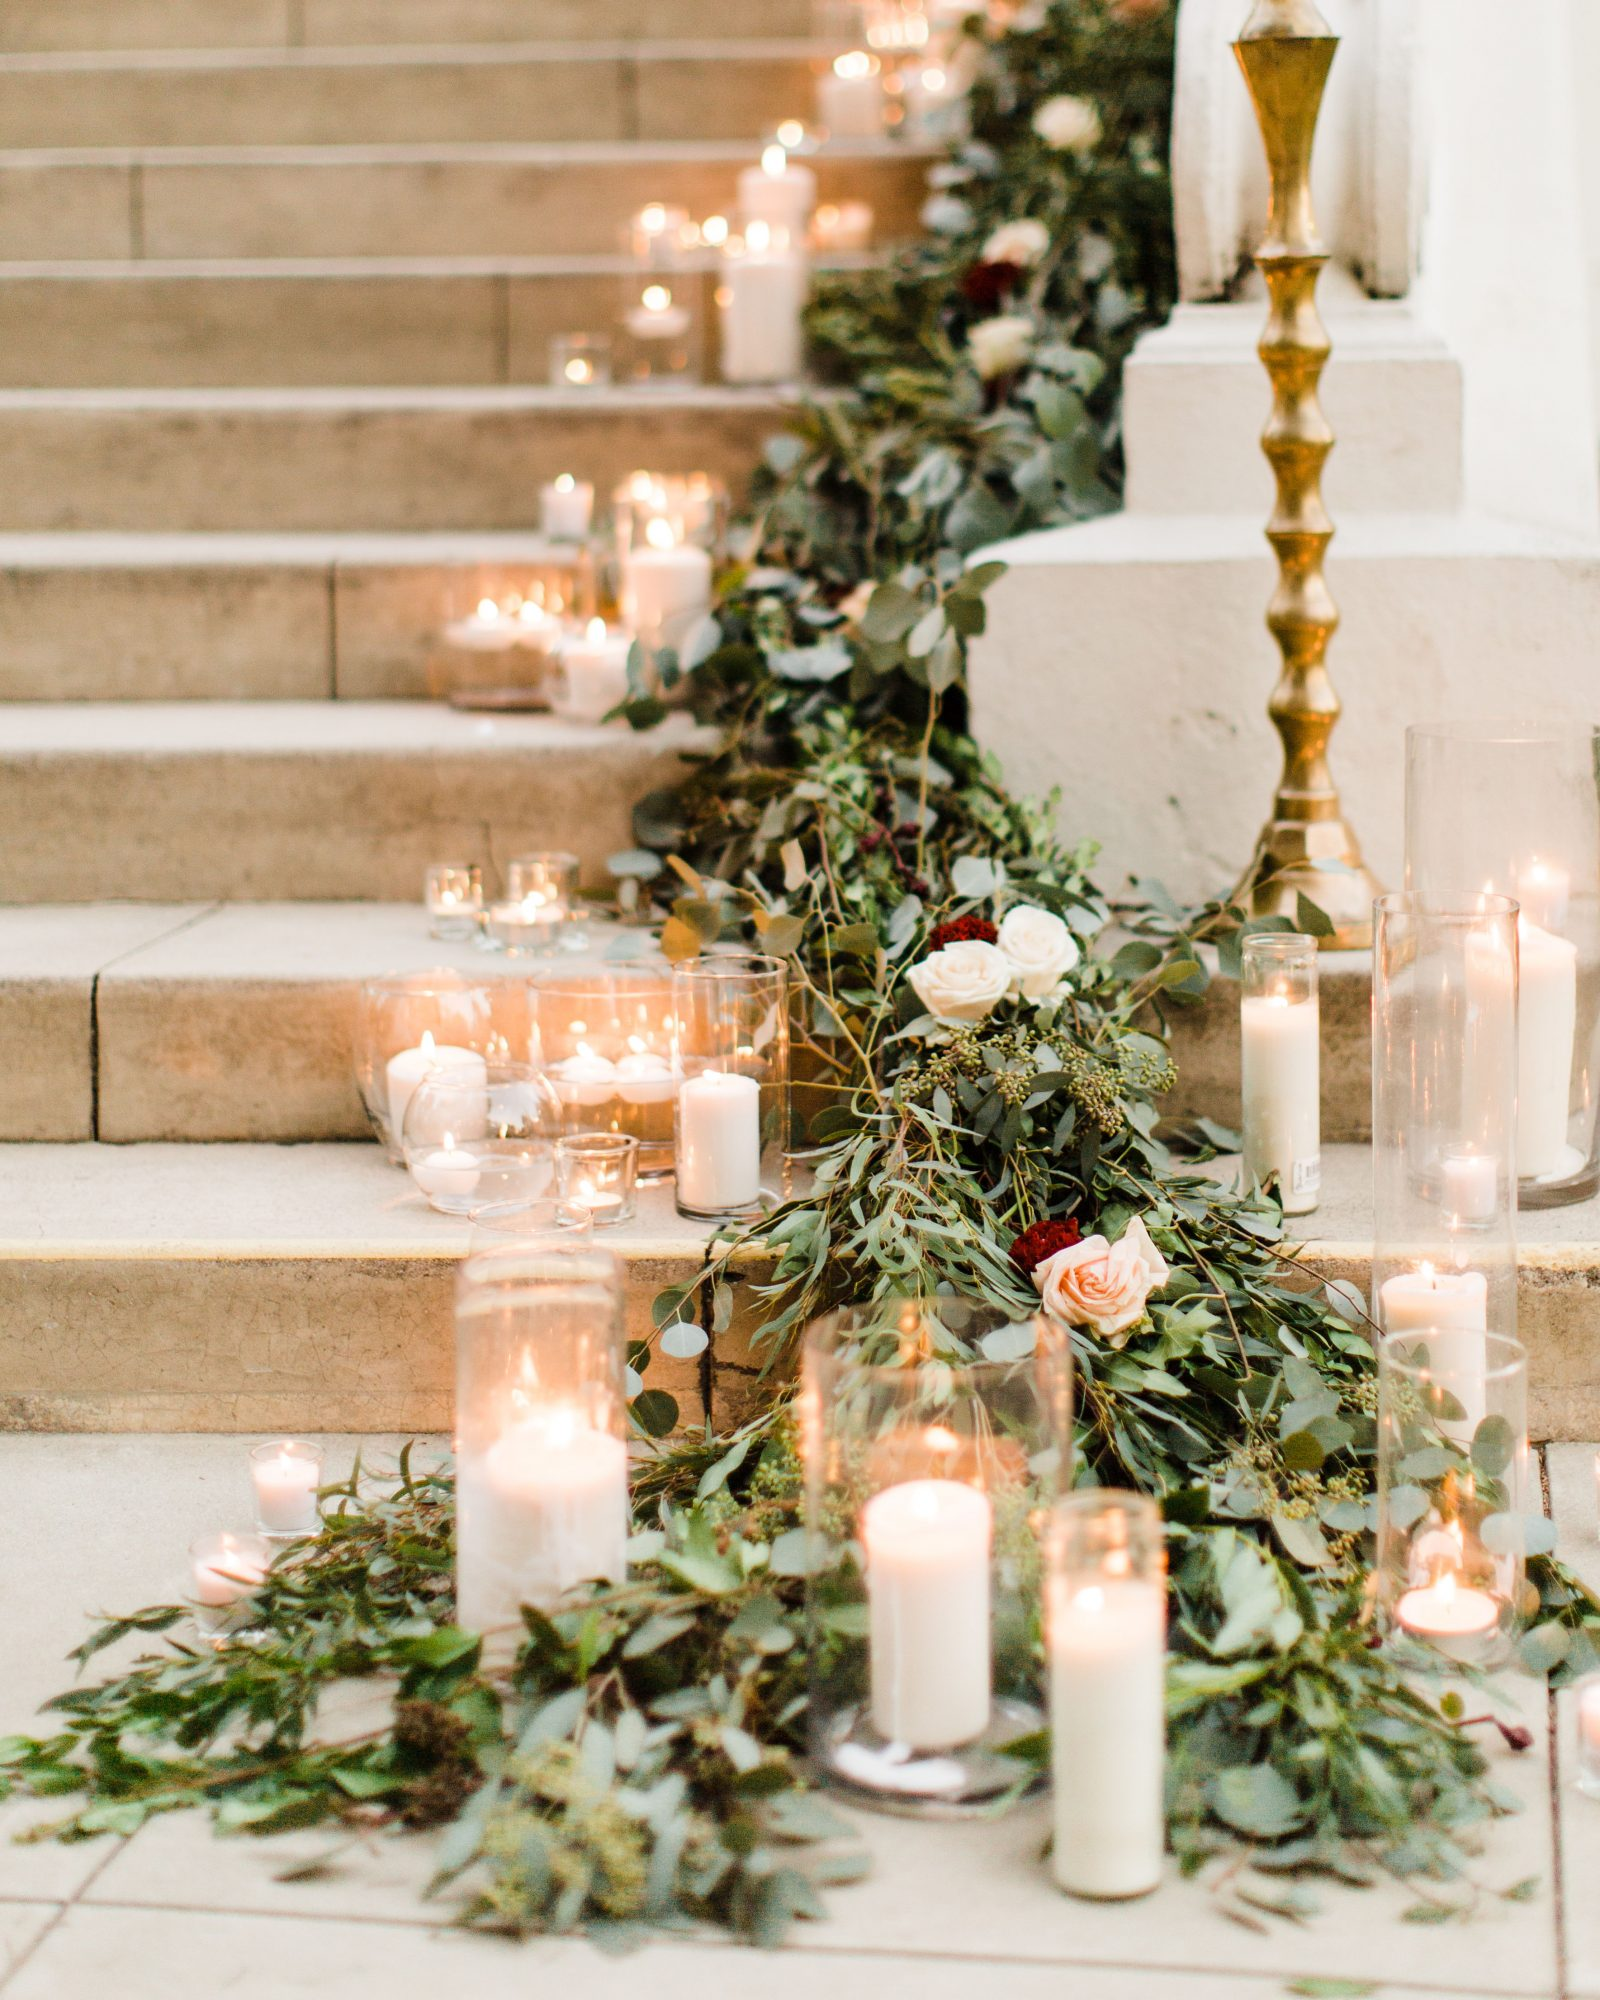 staircase banister decor candlelight greenery